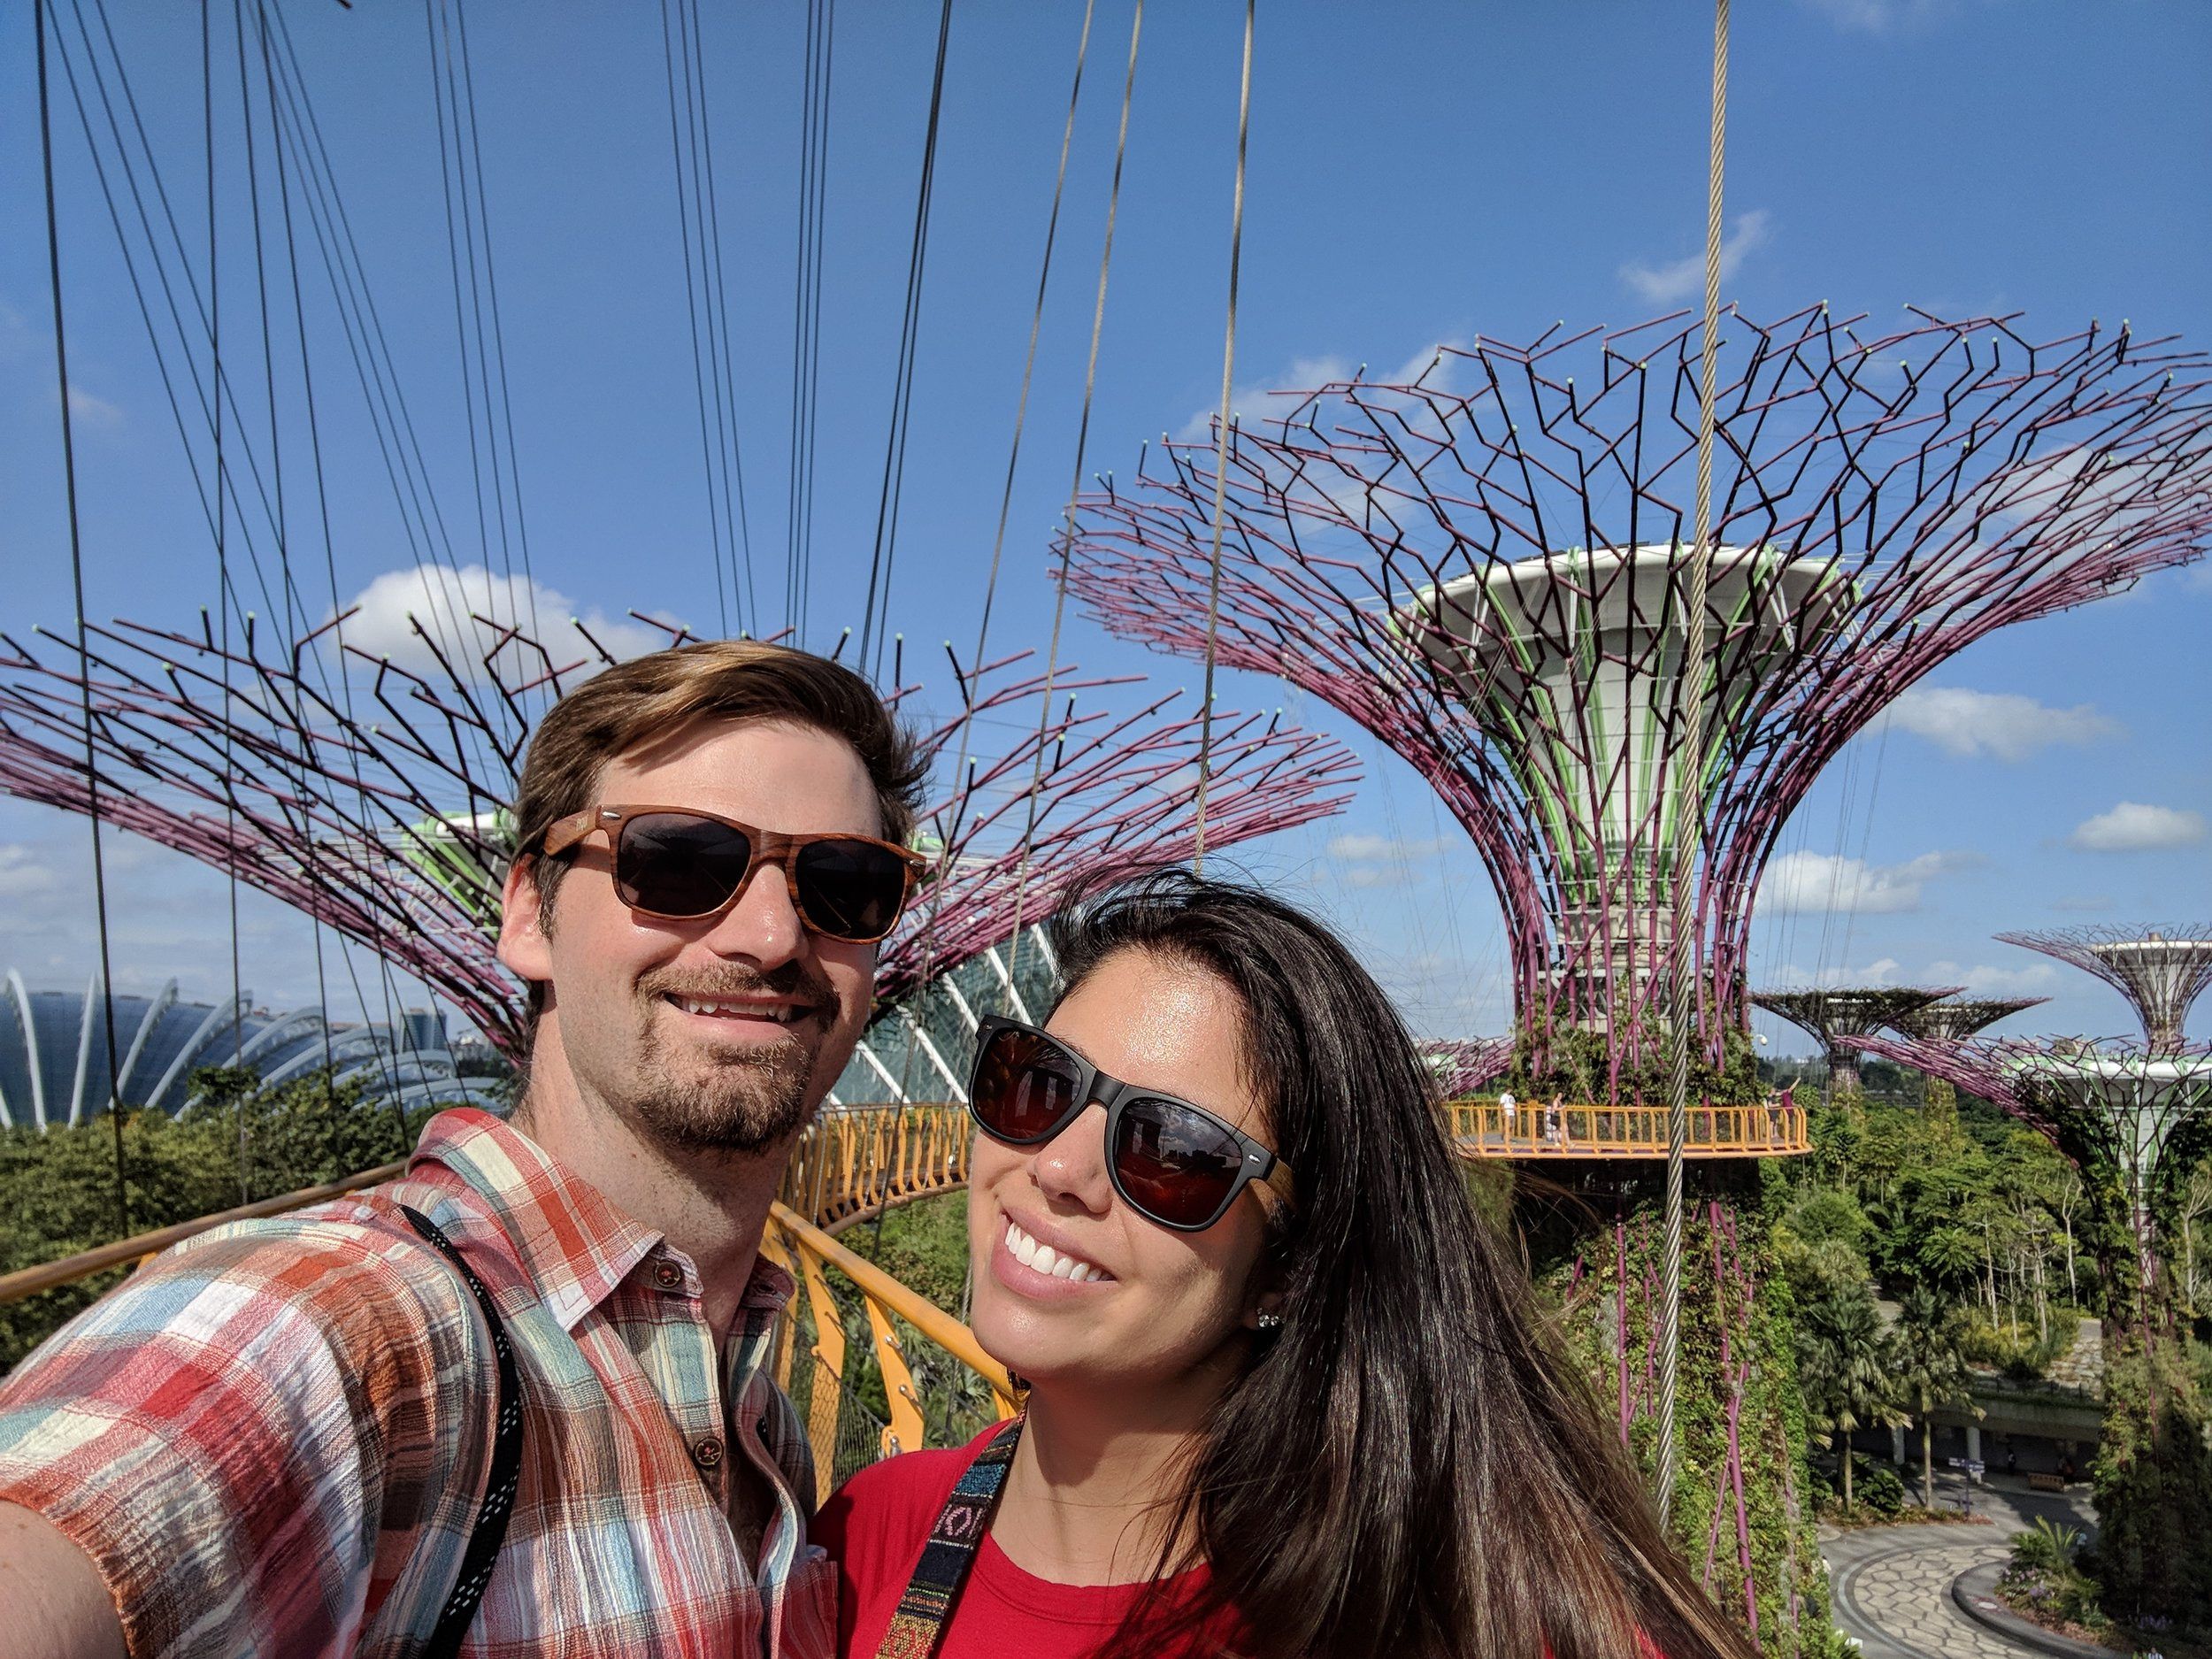 Couple poses for photo at the skywalk at the top of the super trees in the Gardens by the Bay in Singapore. boldlygotravel.com